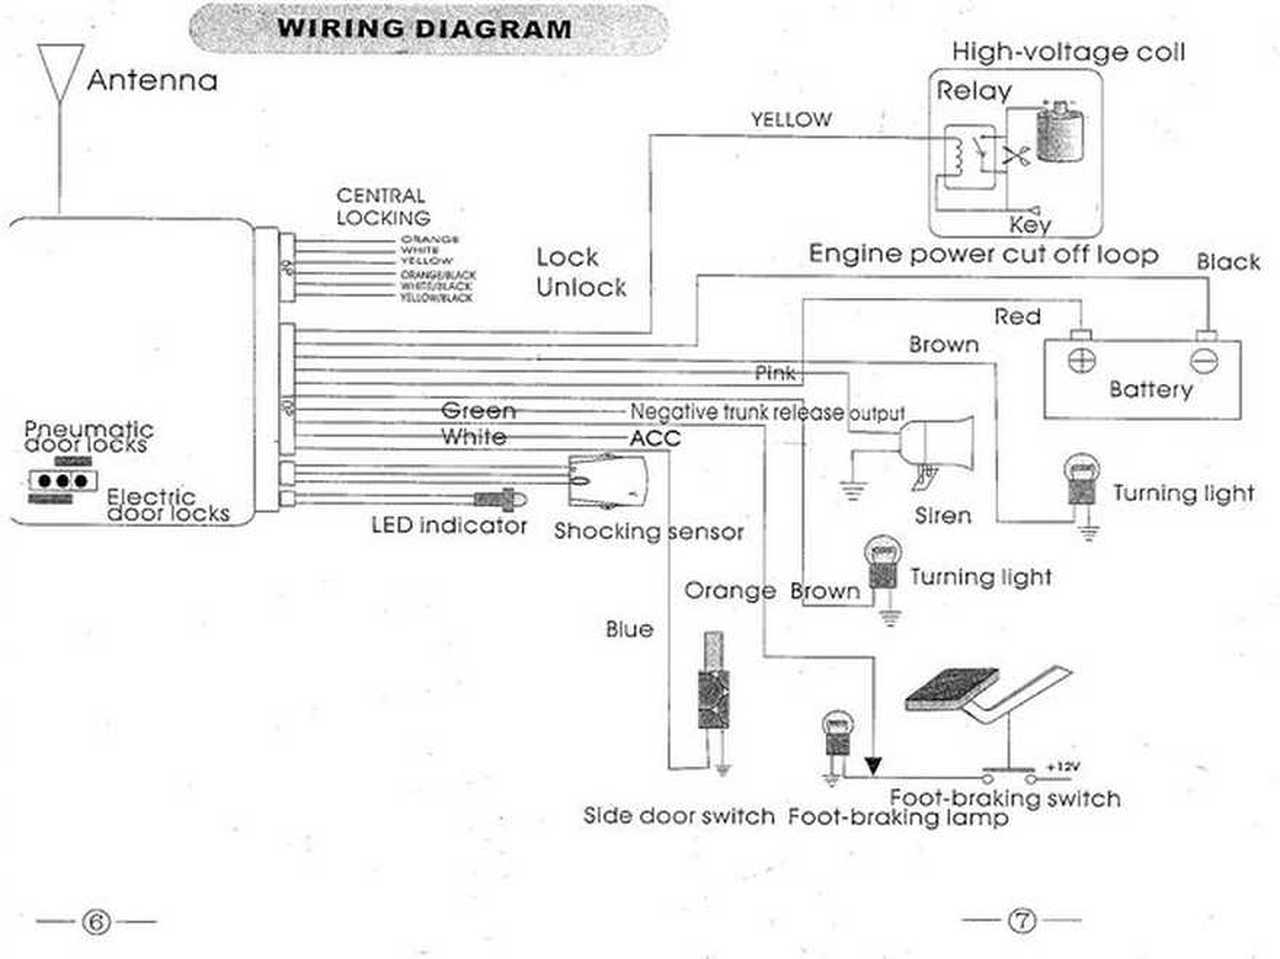 Alarm Wiring Diagram On Prestige Car Alarm Wiring Diagram For Honda